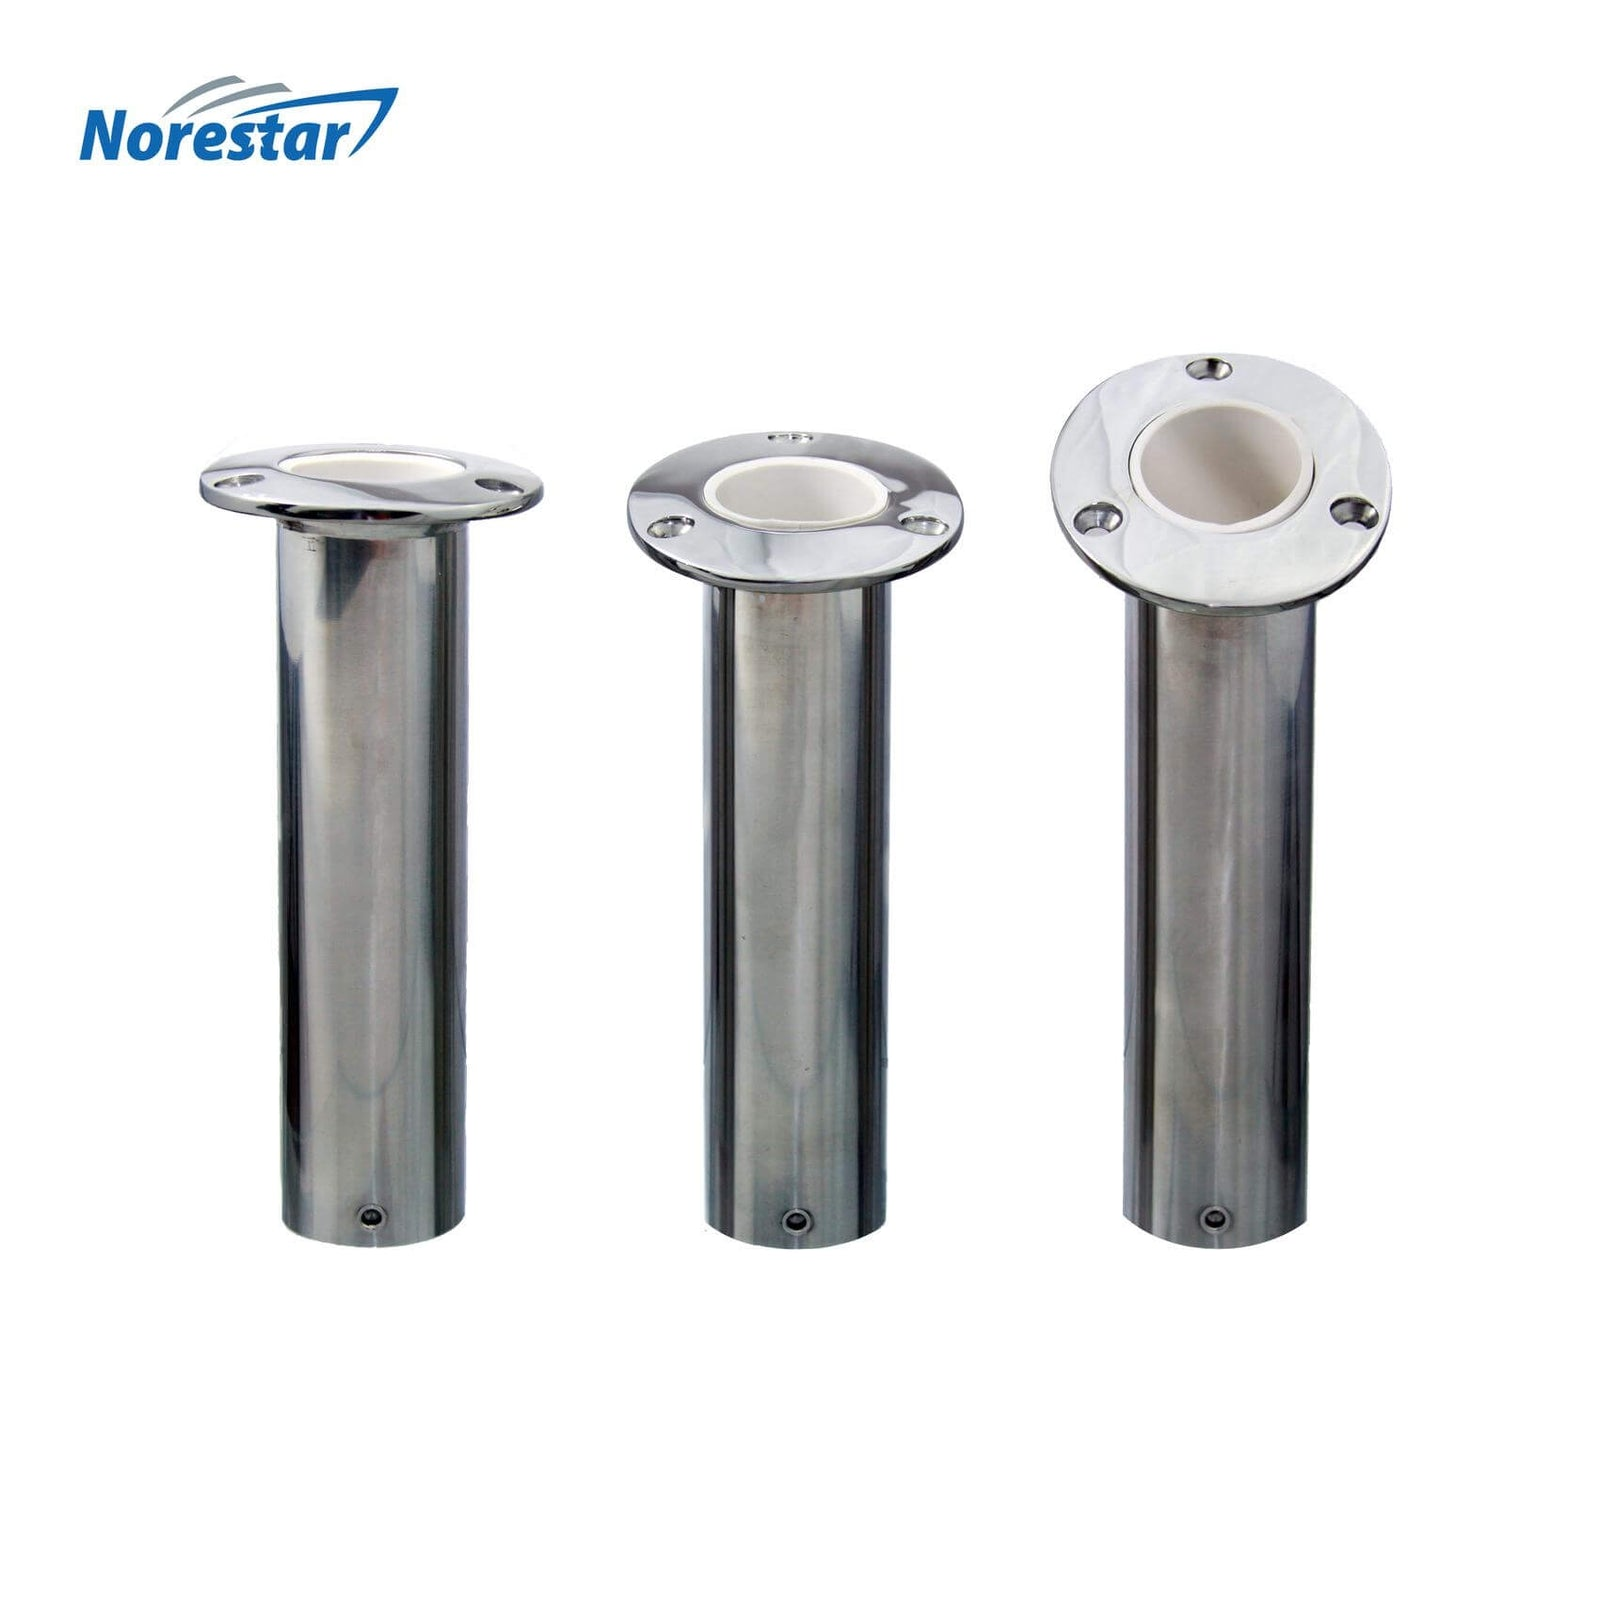 Flush Mounted Stainless Steel Rod Holders